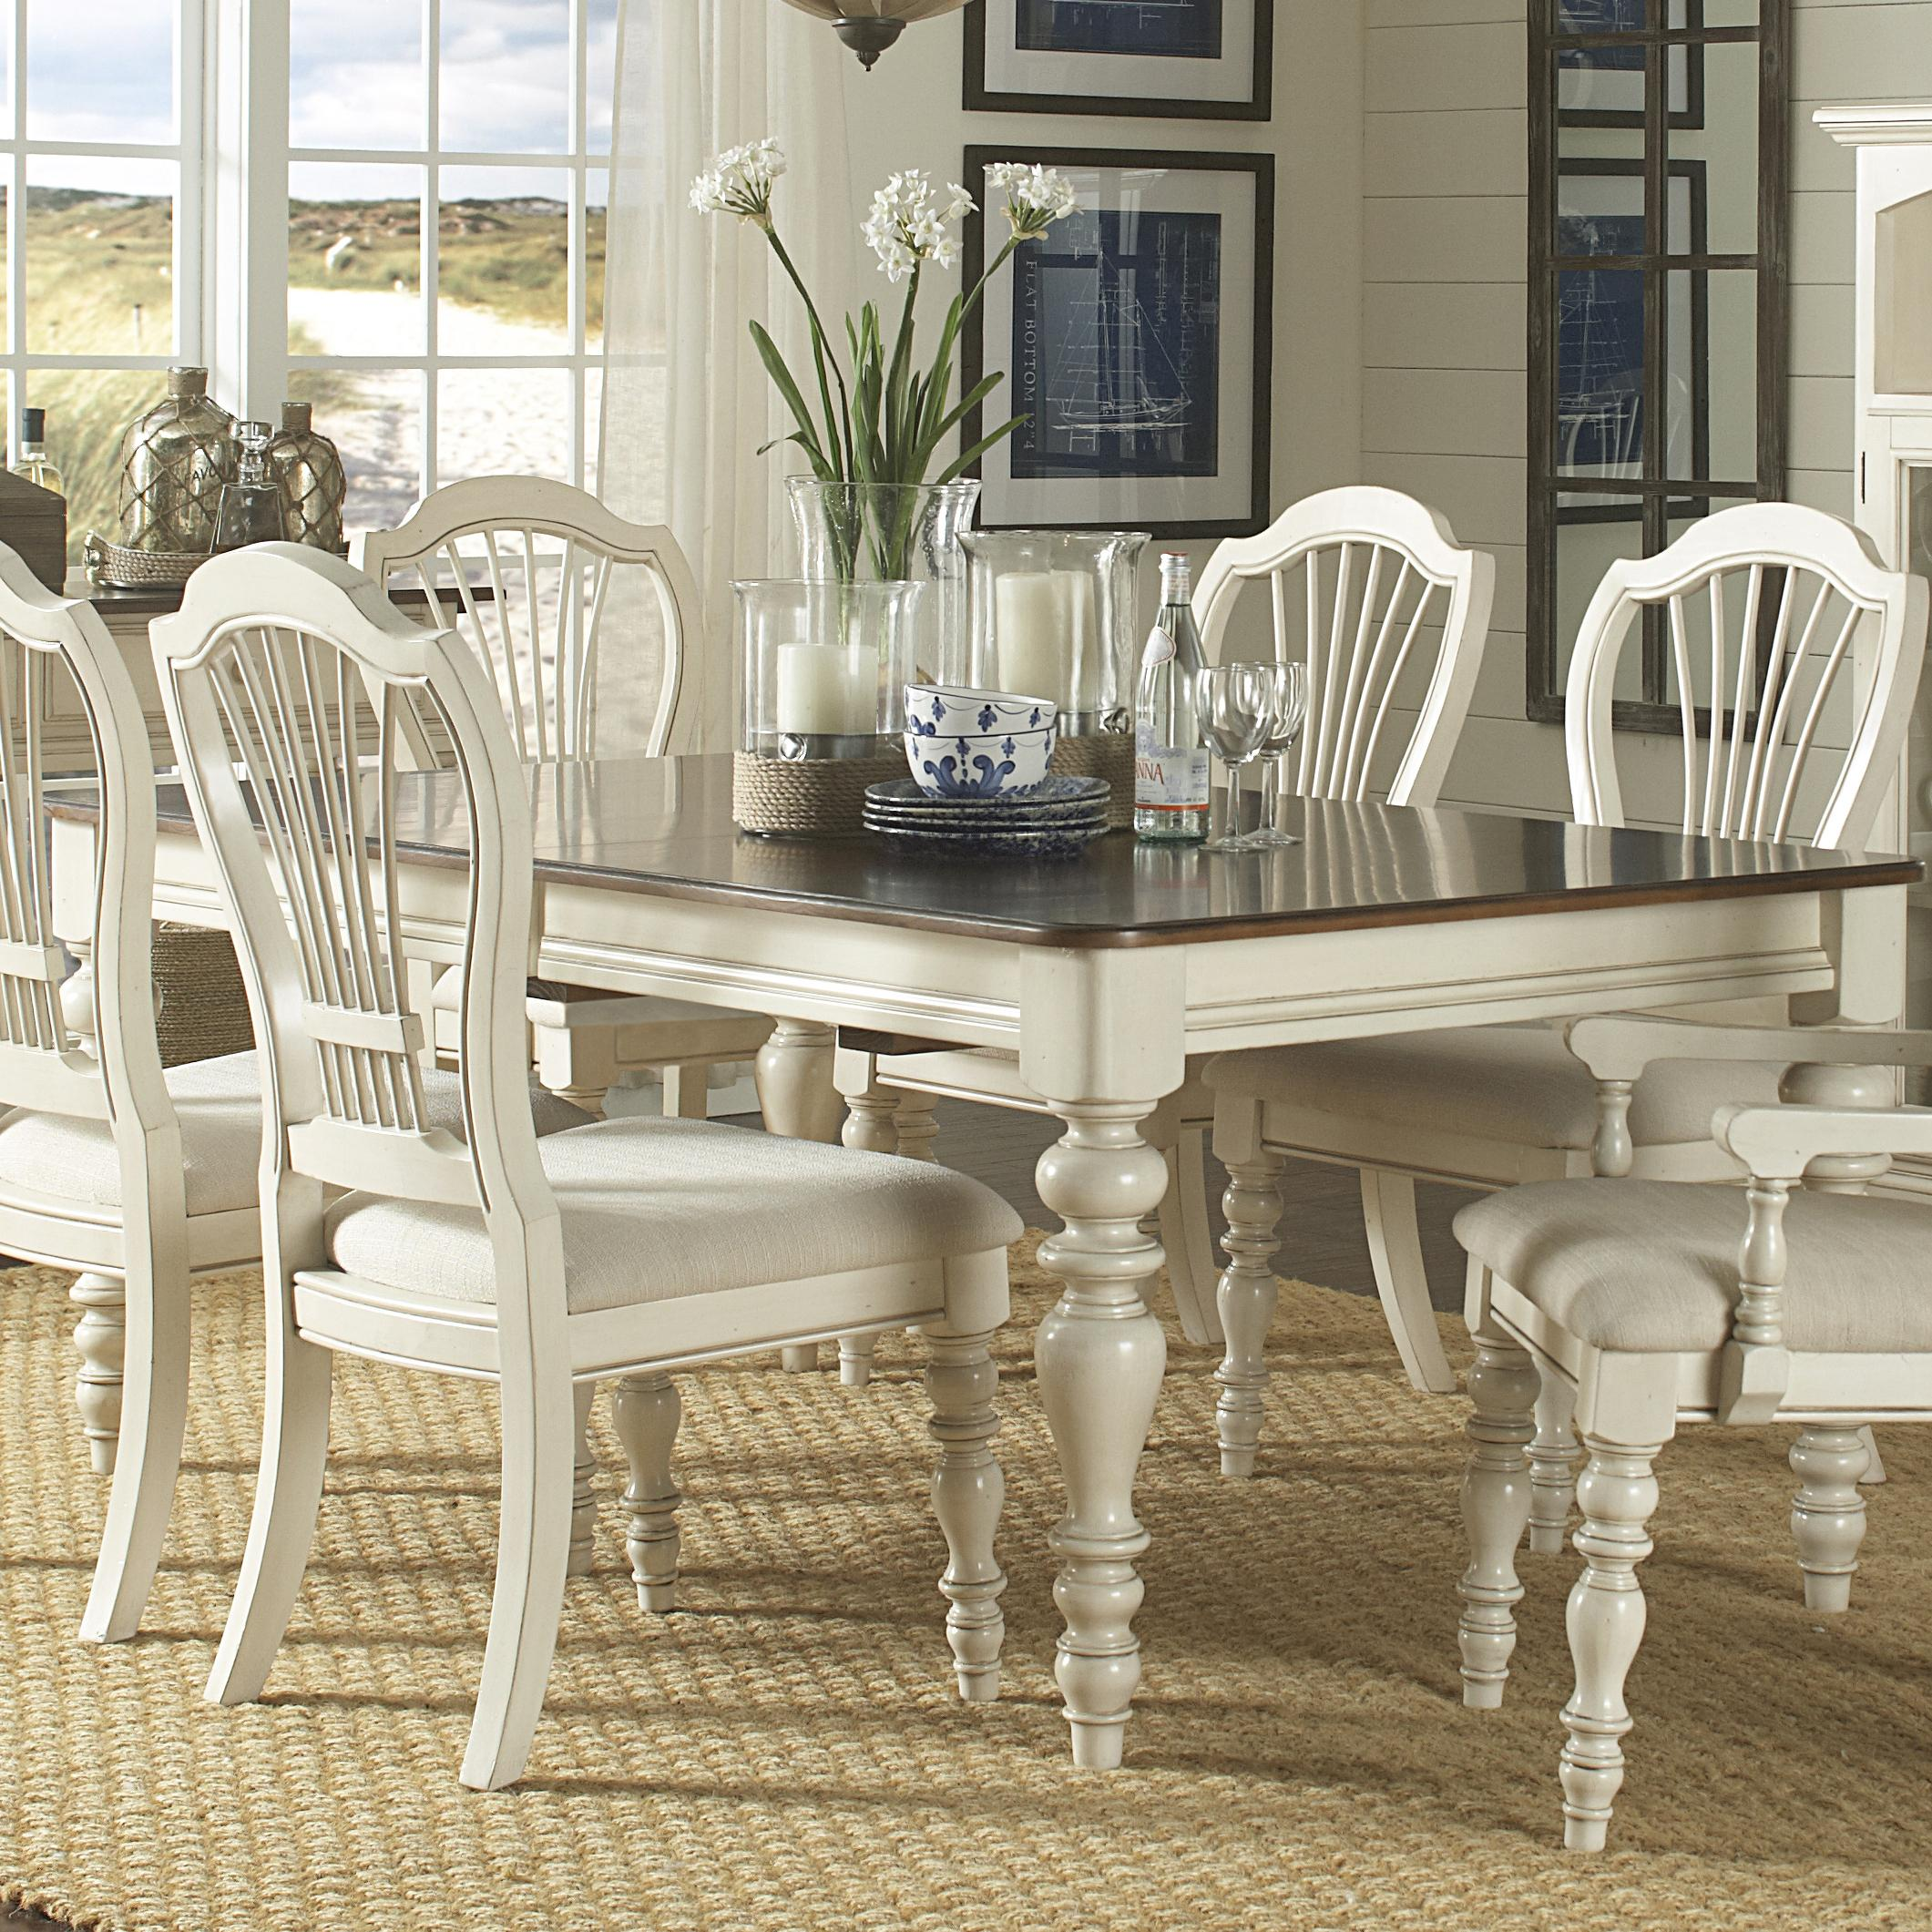 Beautiful Dining Table With Turned Legs